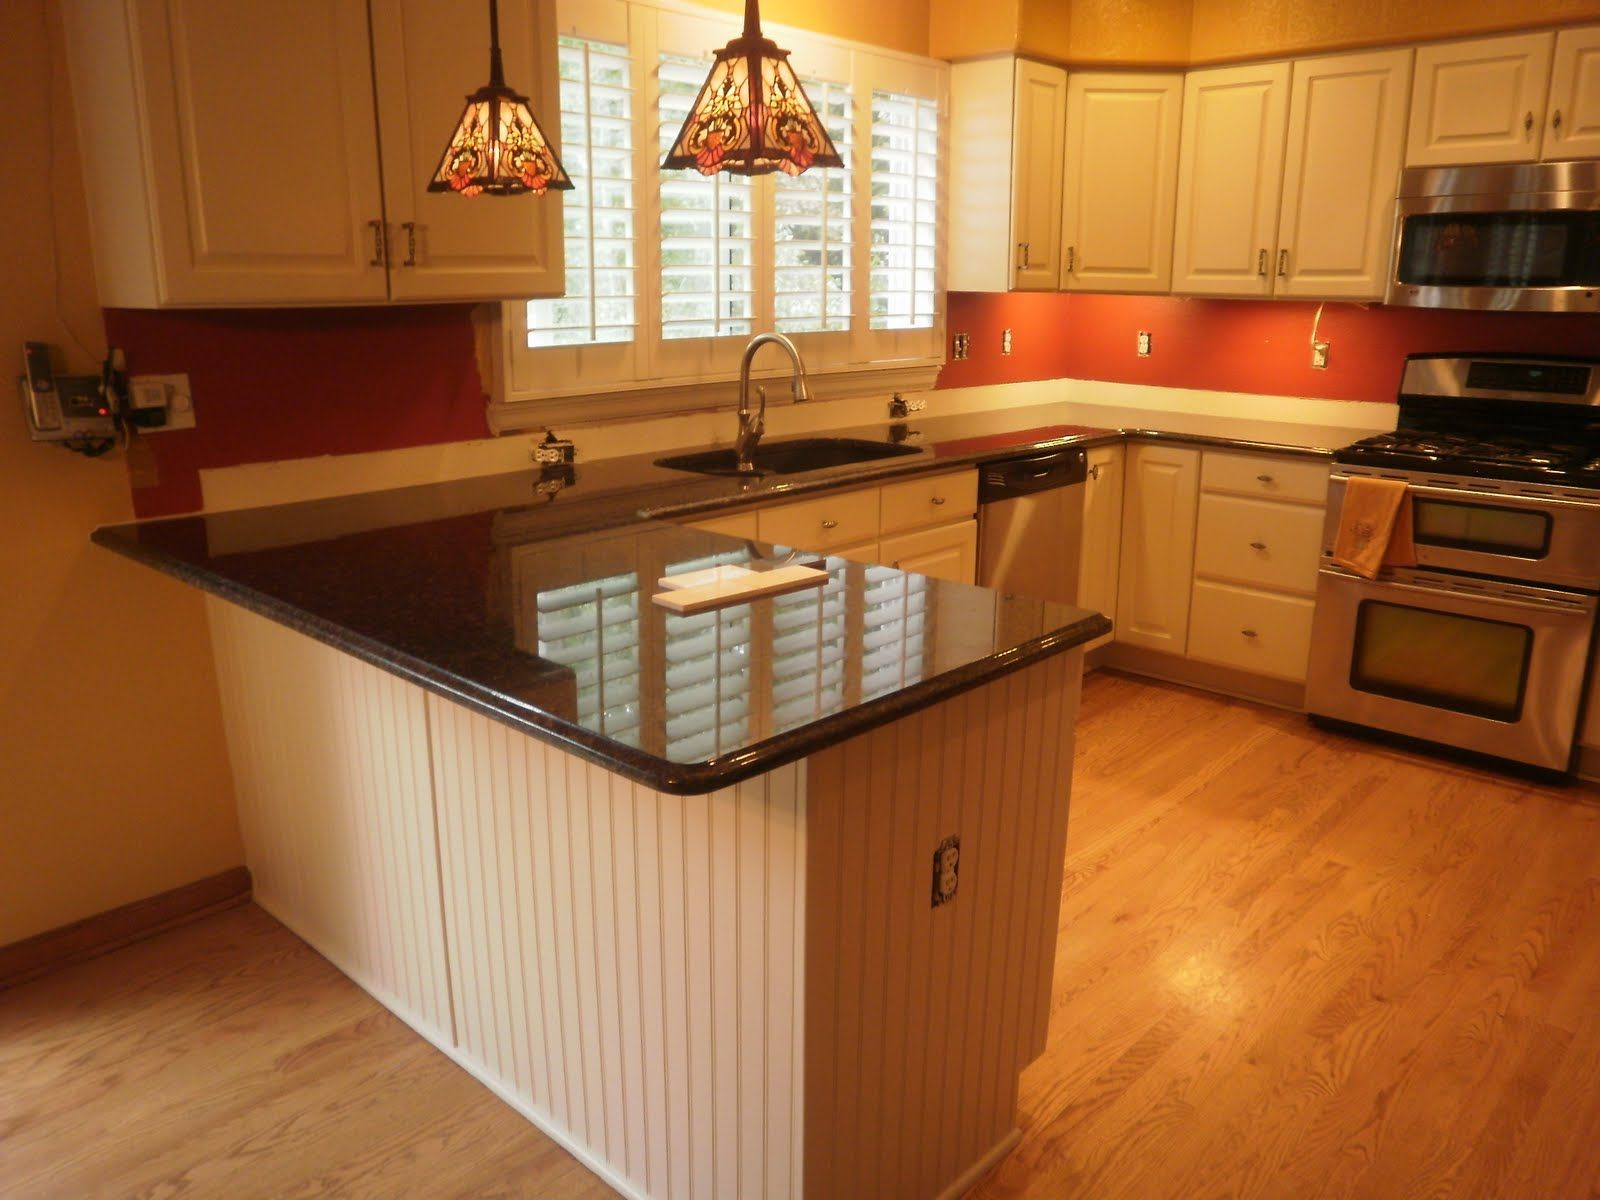 Kitchen Decorations For Countertops Beautiful White And Red Kitchen Design Ideas With Black